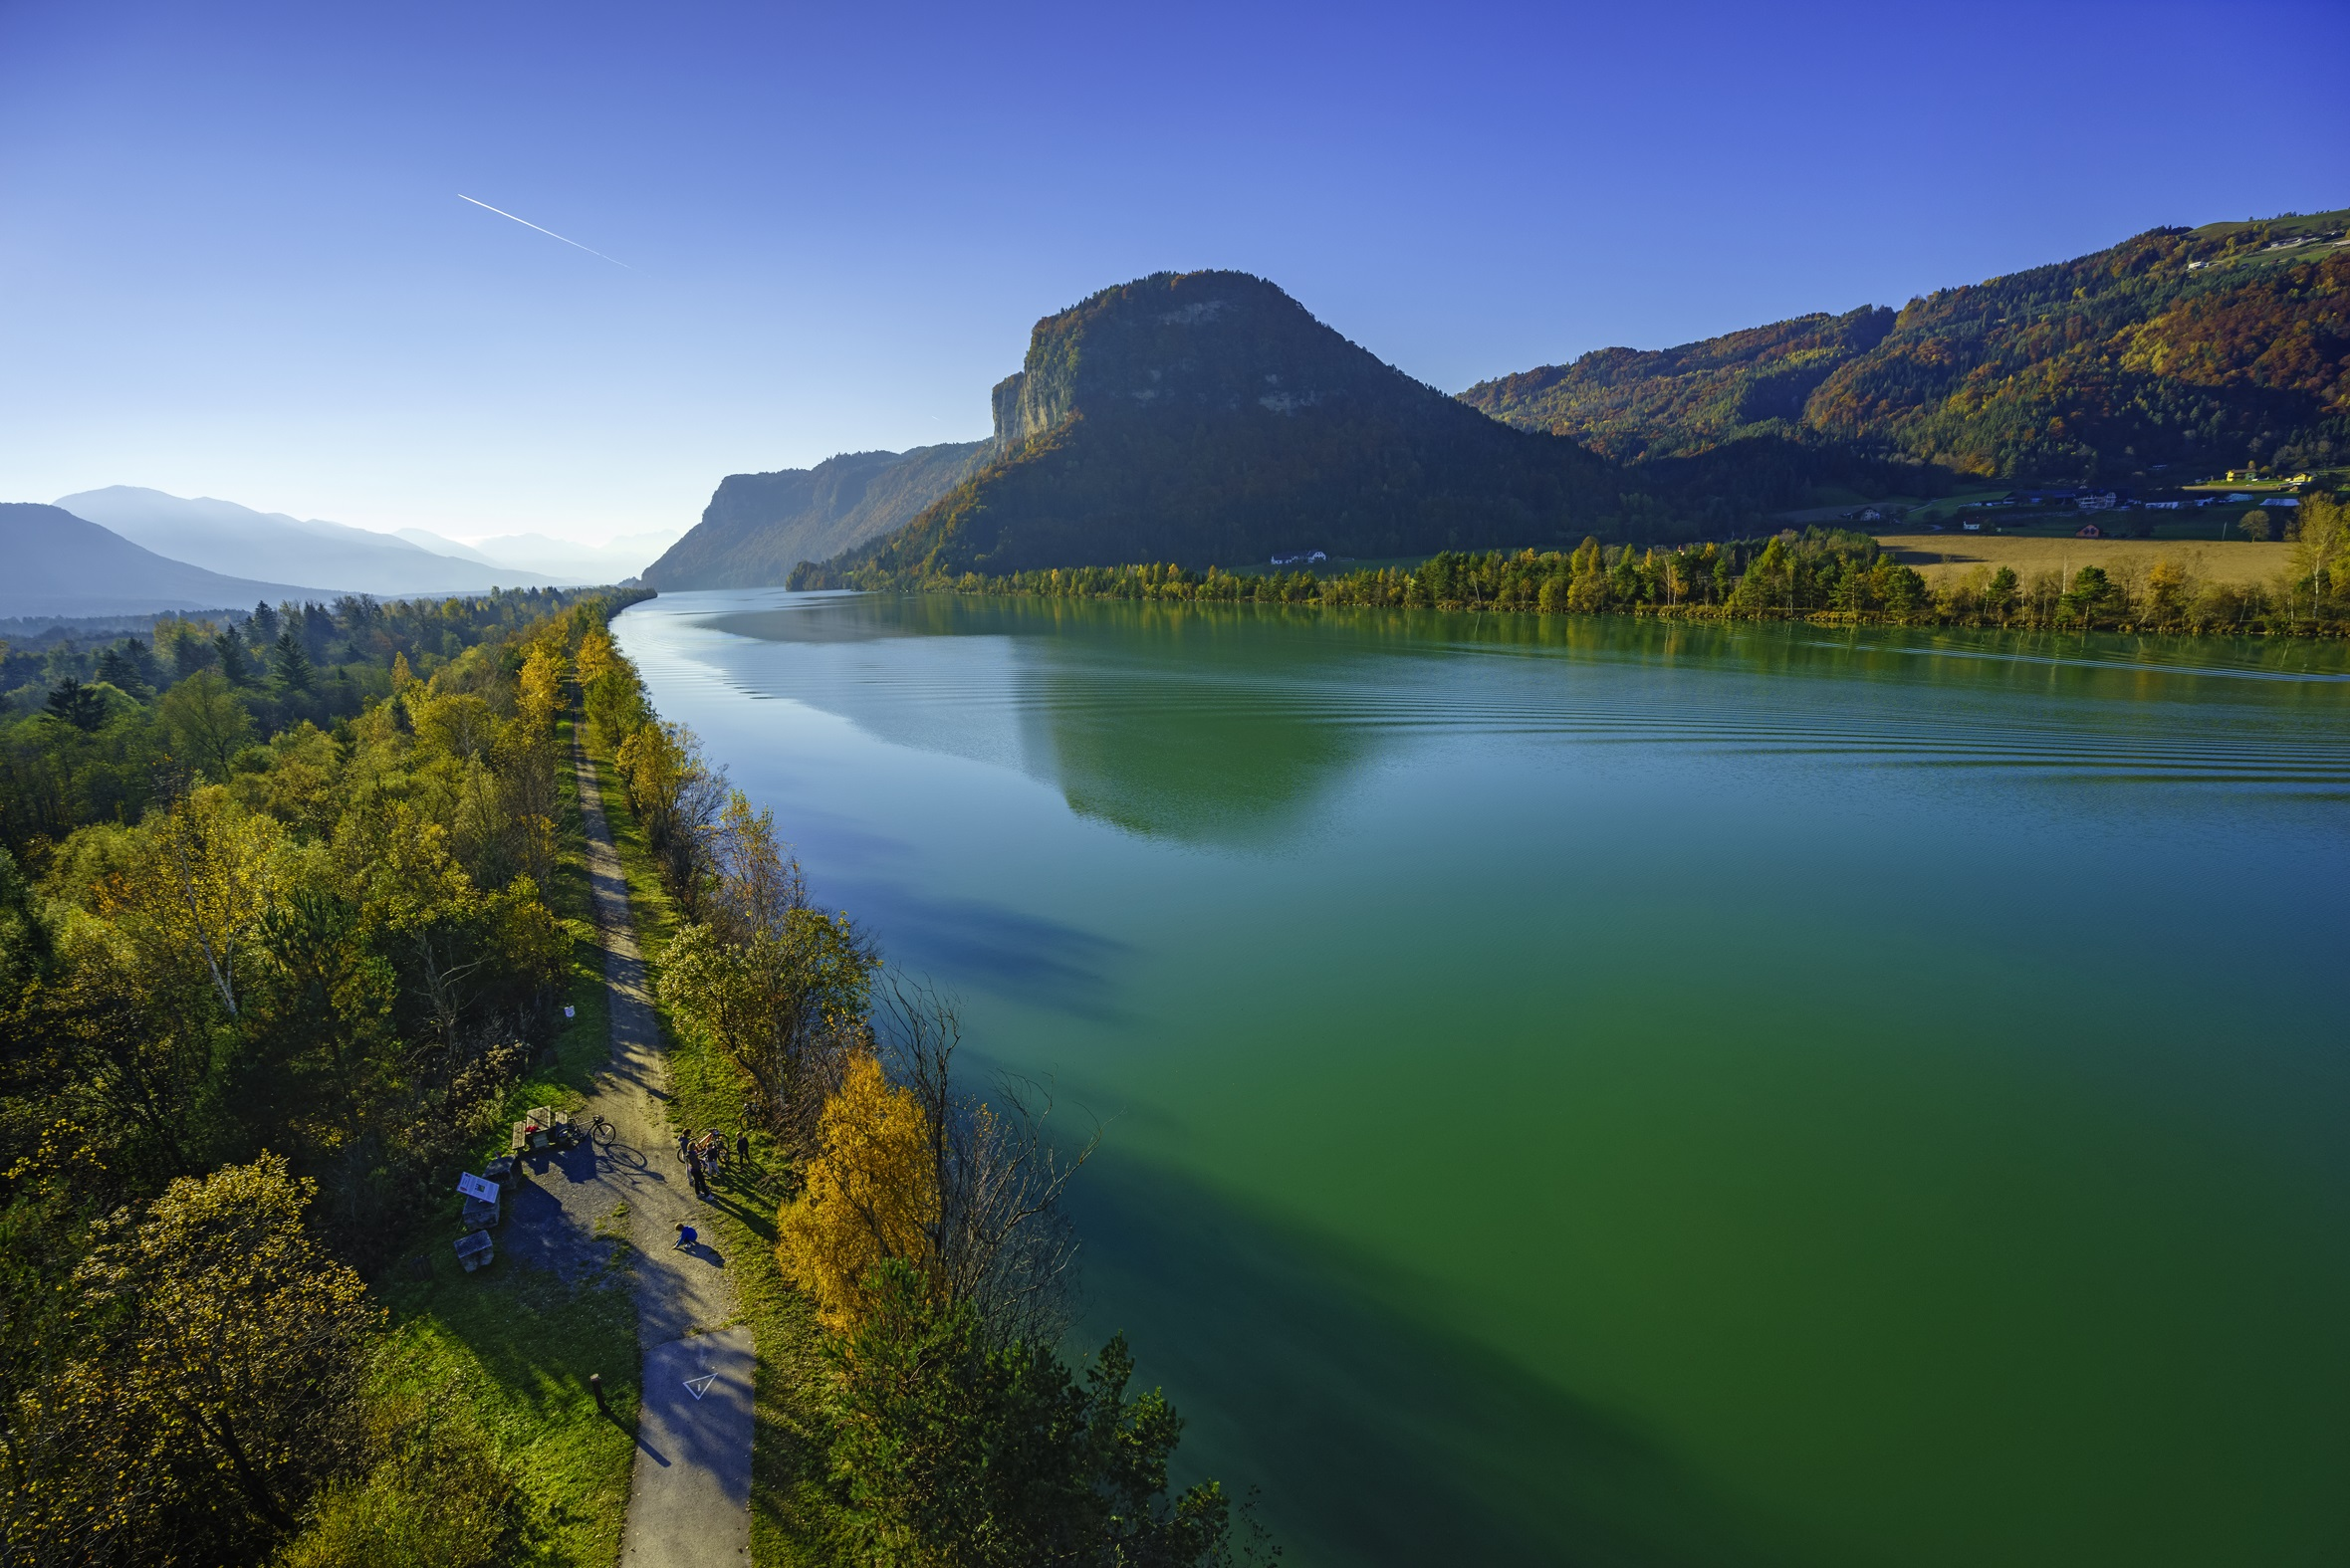 The 5 star Drau cycle path is one of the most beautiful cycle routes in Austria